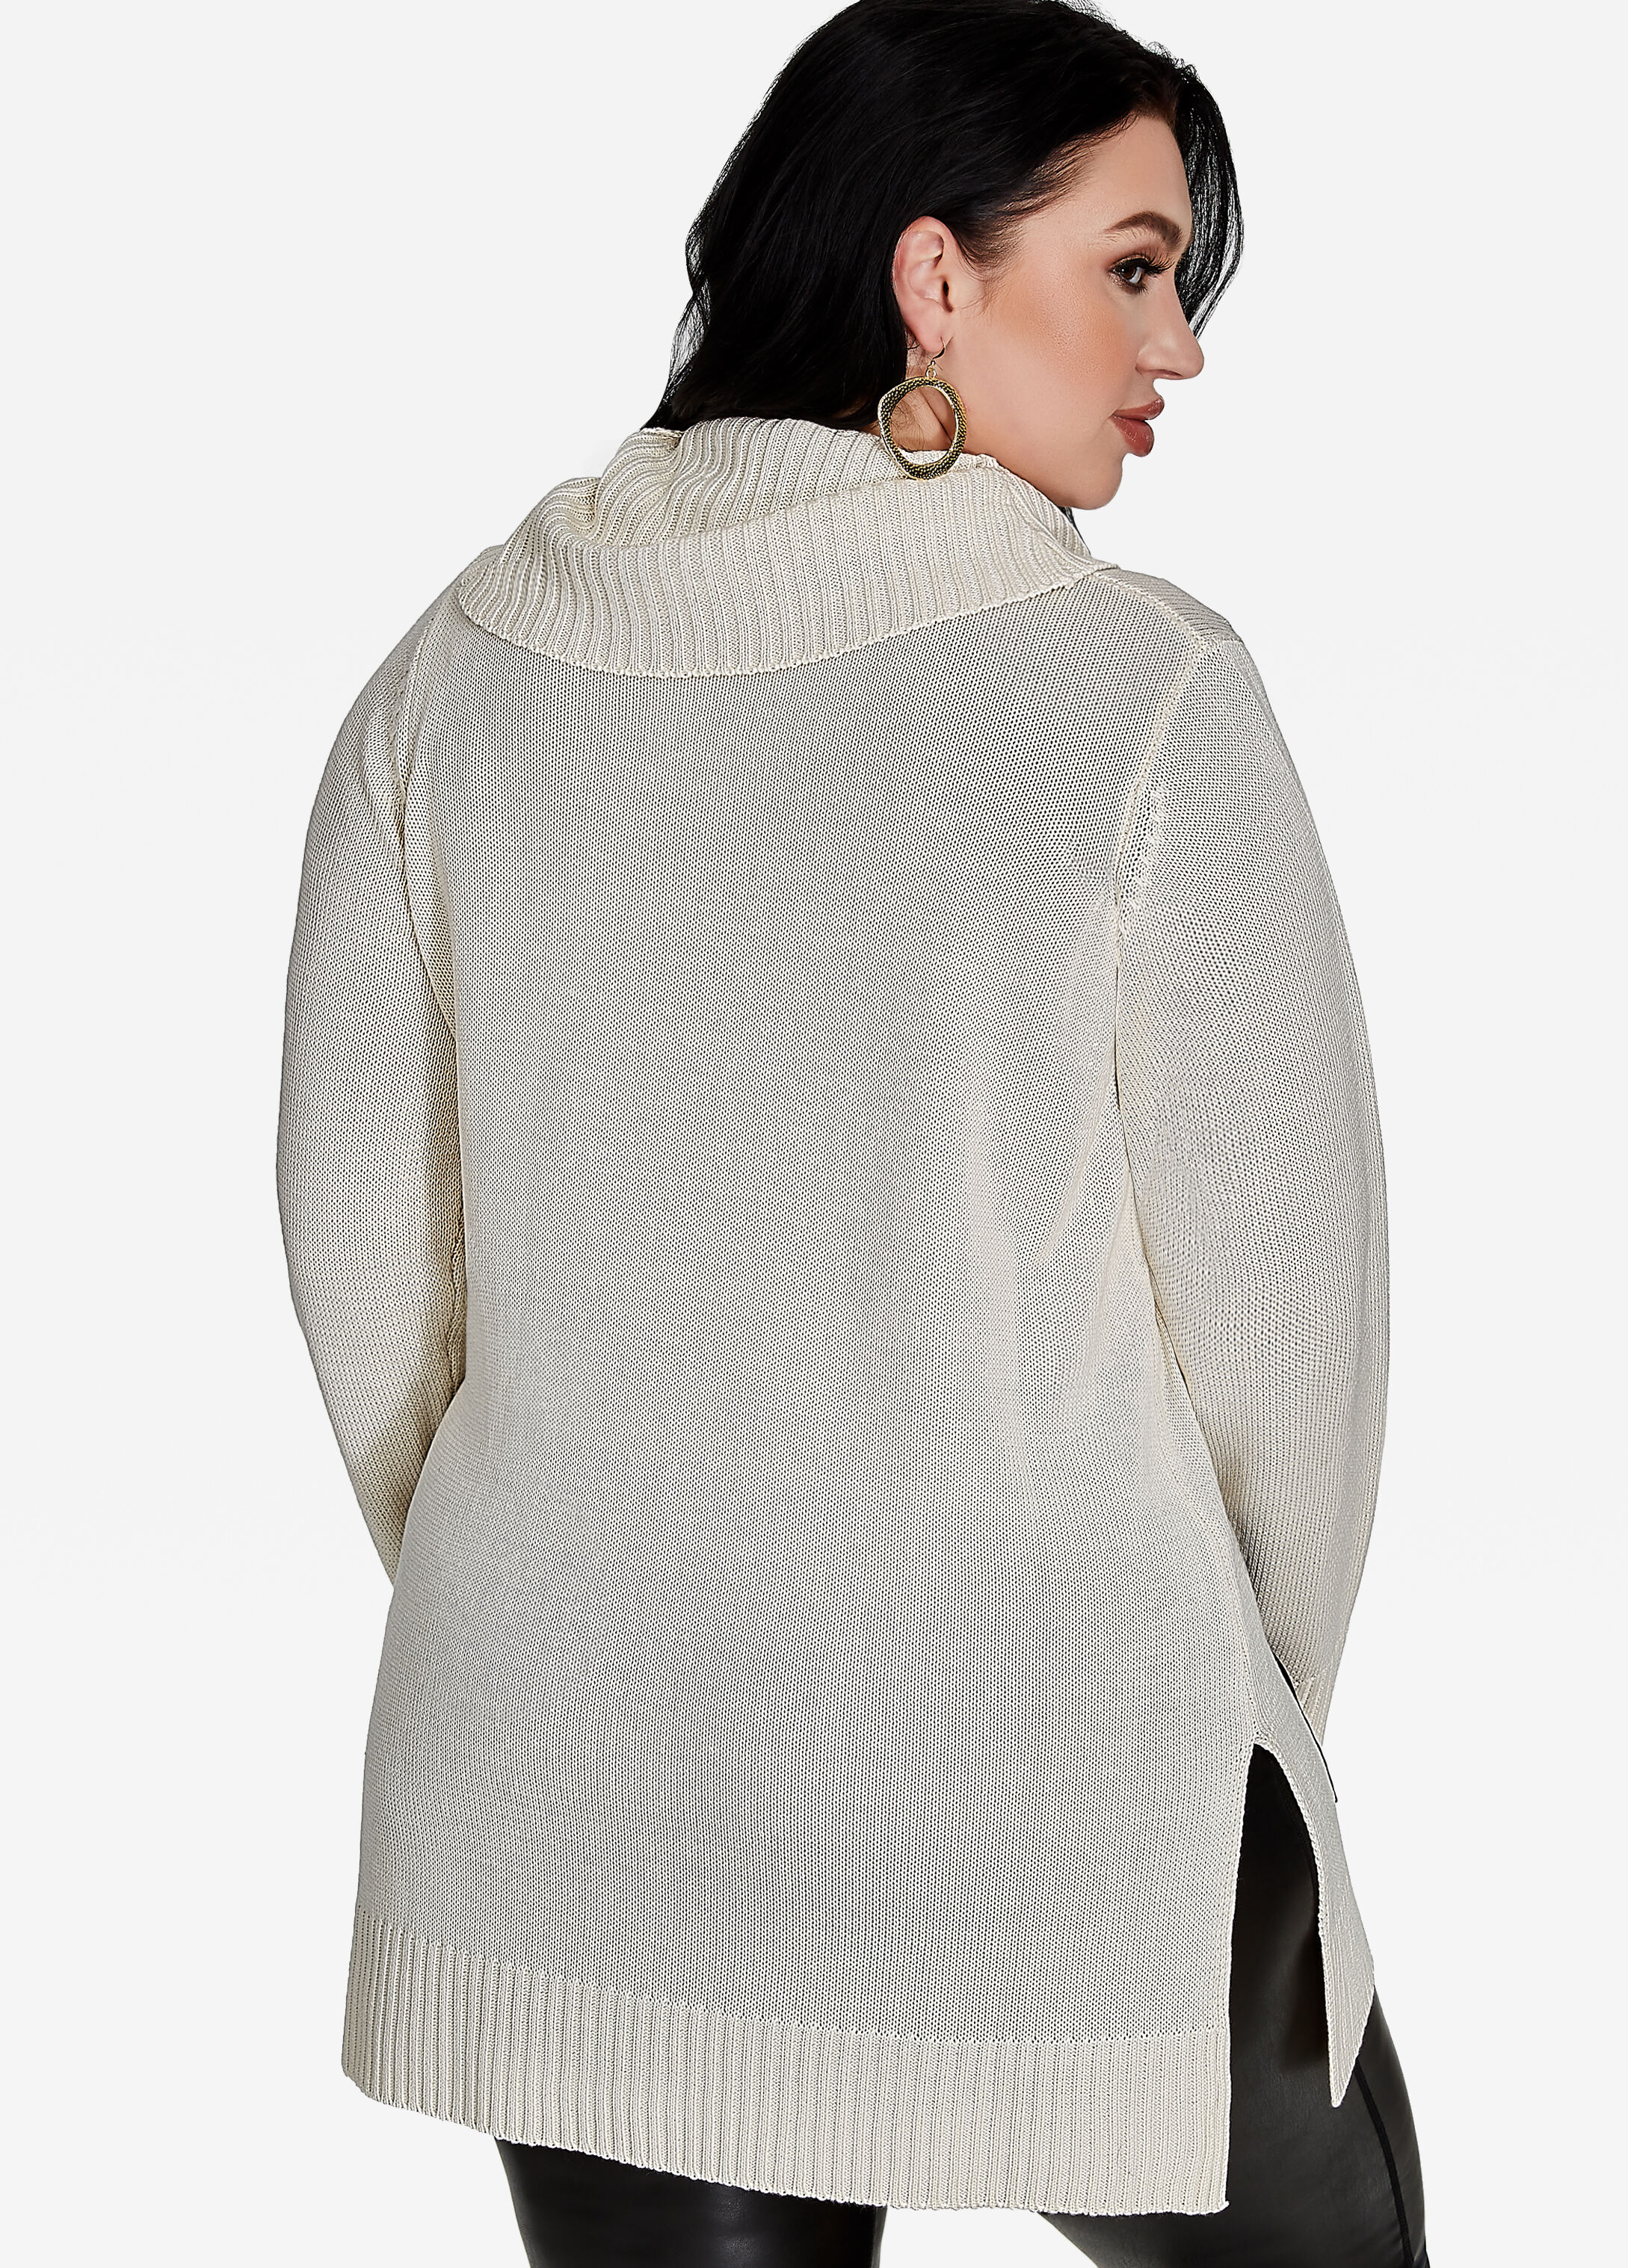 Buy Cowl Neck Sweater Egg Nog - Clearance